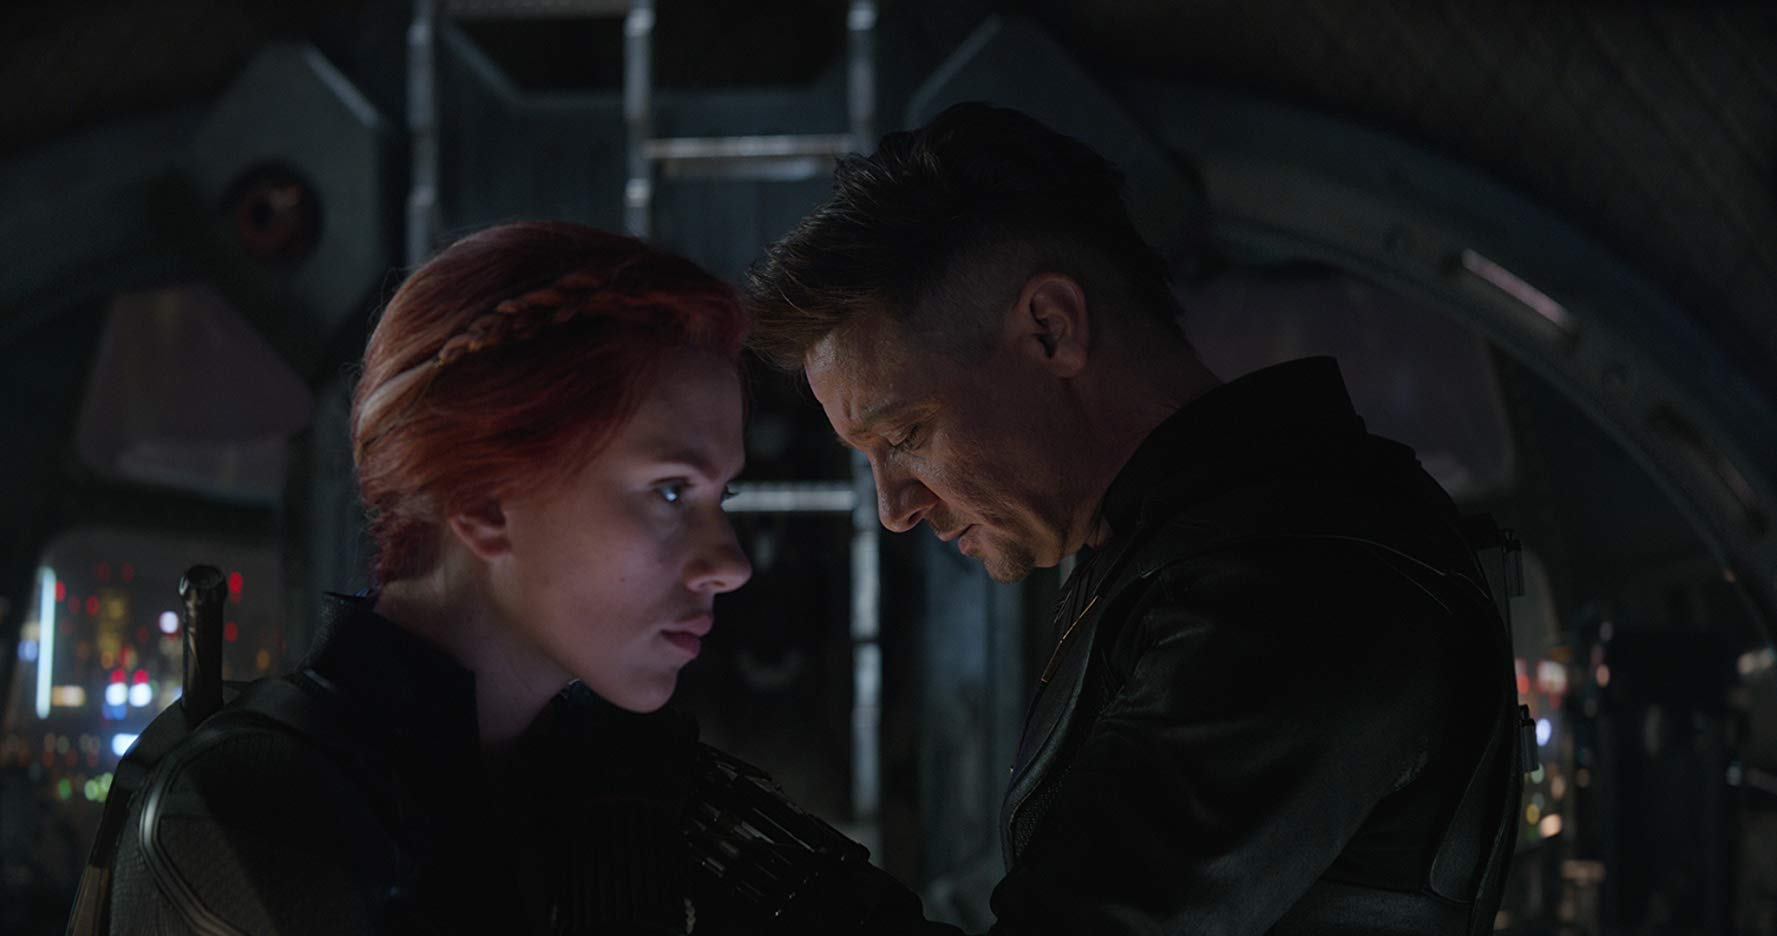 Avengers: Endgame topples Star Wars preview record